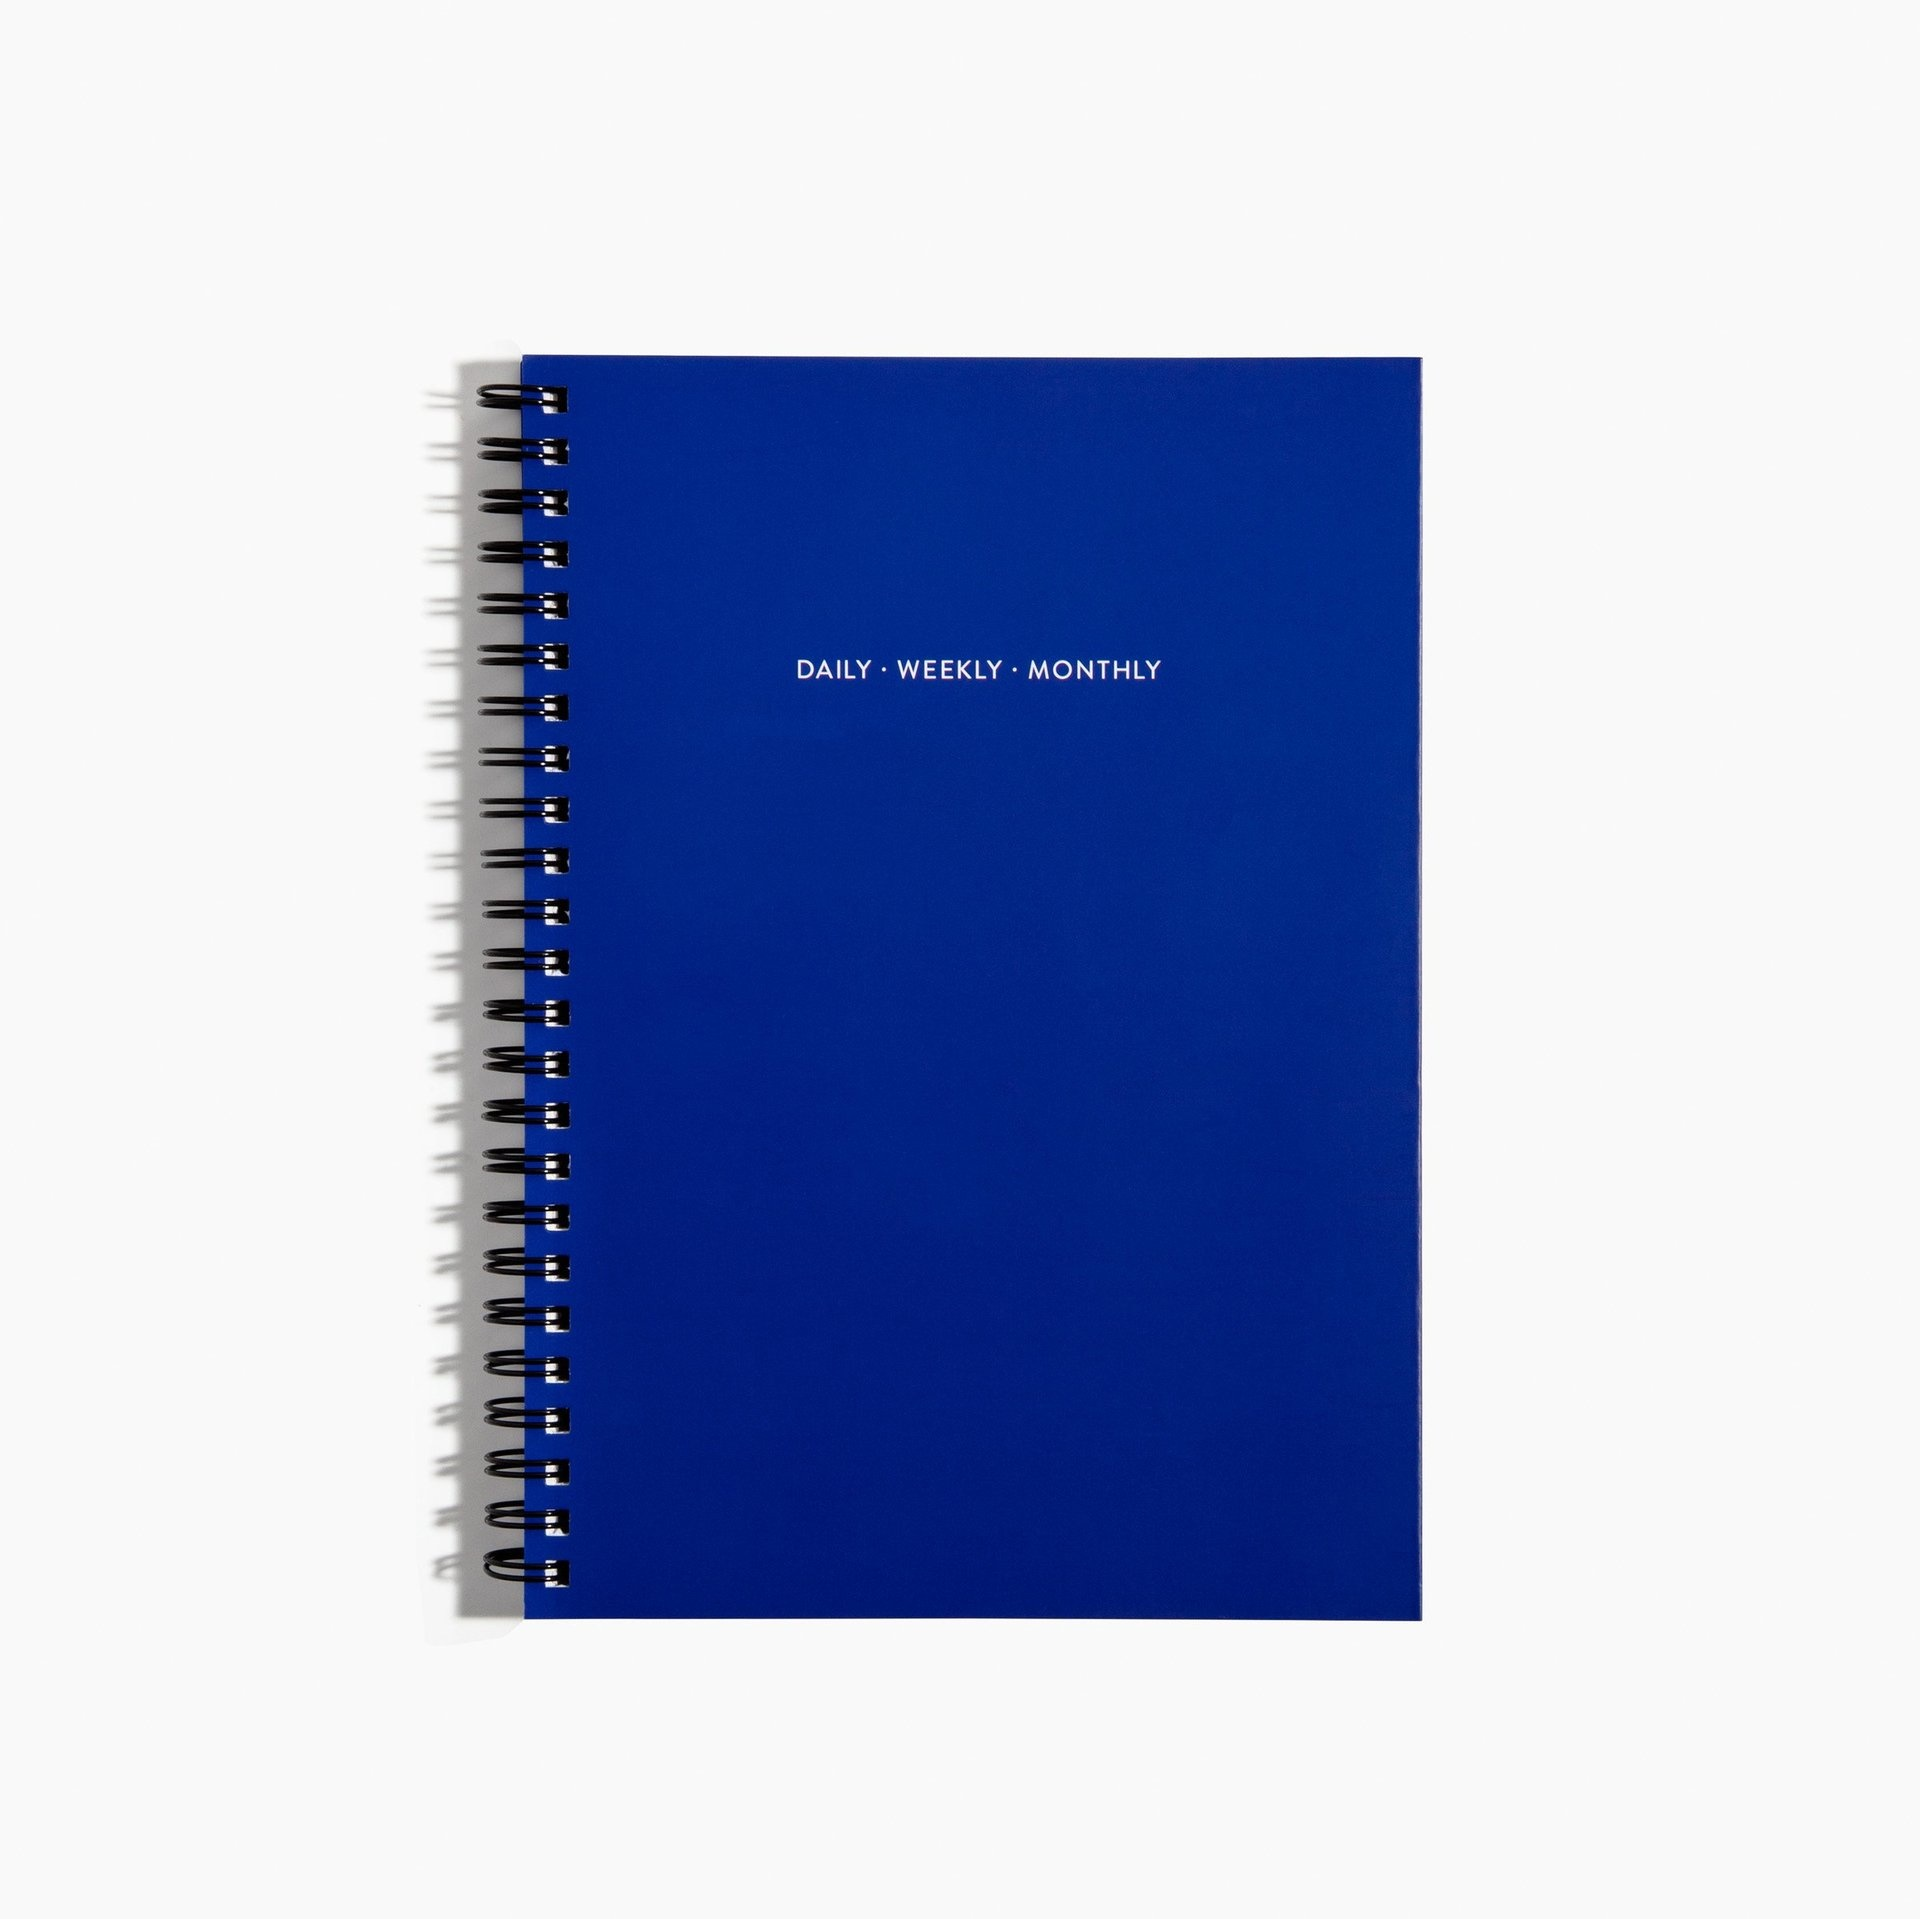 Poketo VIS-DWM Small Blue Spiral-Bound Planner